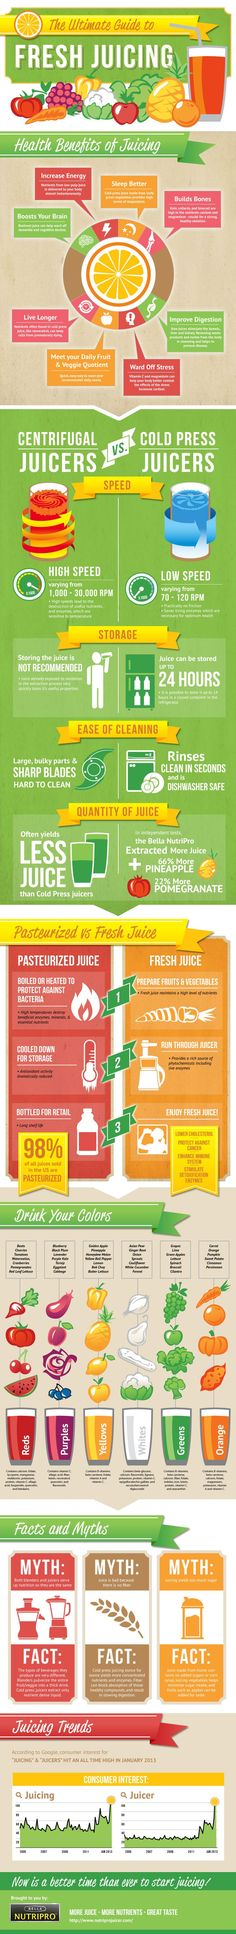 "98% of ""juice"" on the market is pasteurized and watered down. Convenience comes at a high cost. For best results, make fresh juice so you know exactly when it was pressed, what's in it and what the conditions were when it was made. Fresh juice also comes  increase energy benefits of"